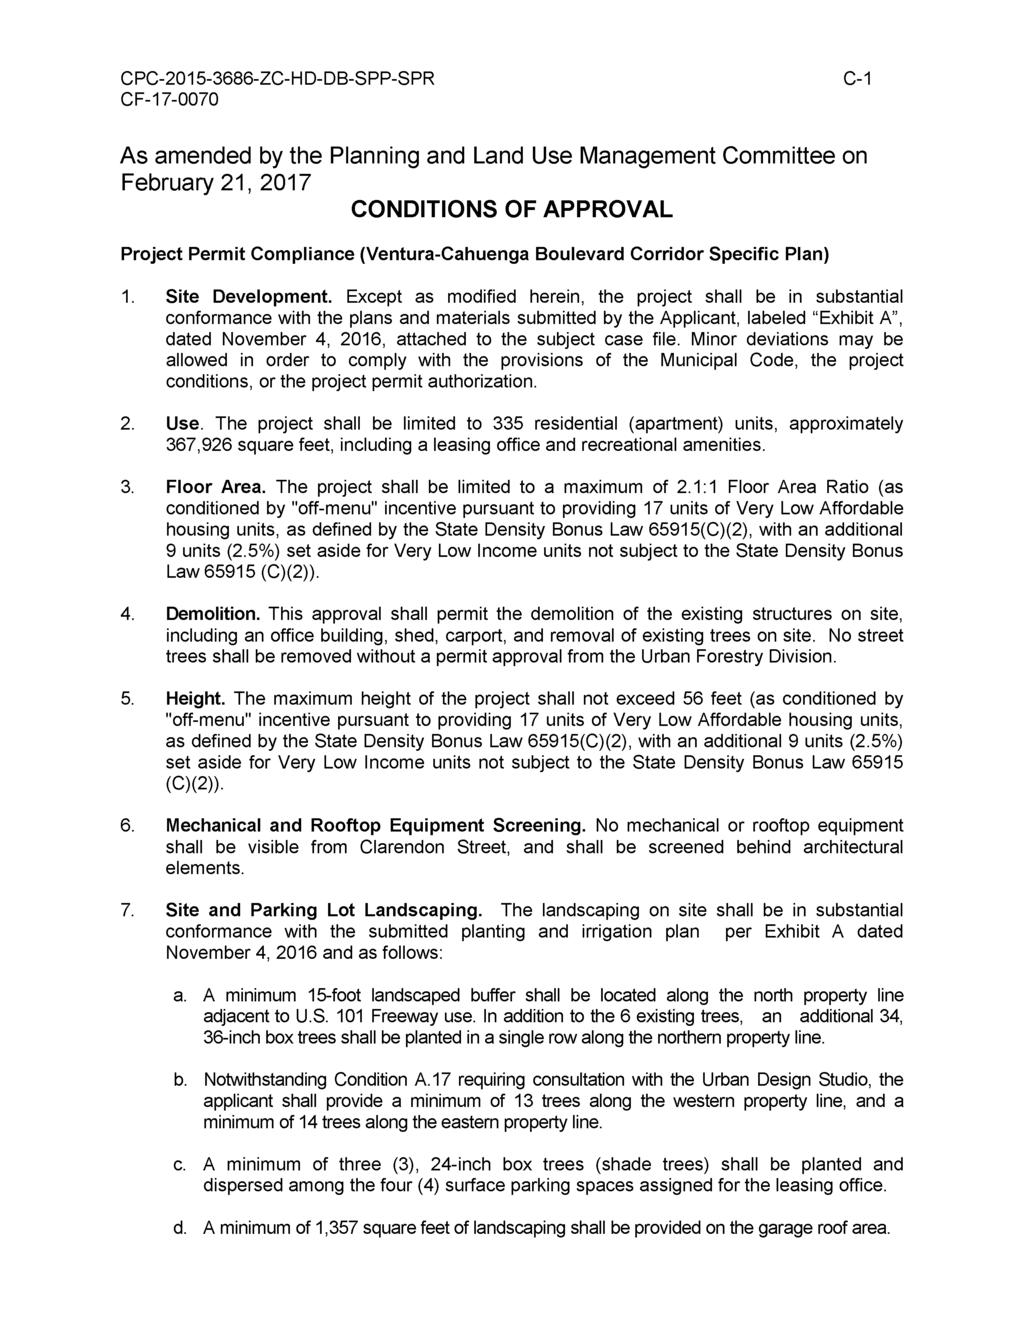 CPC-2015-3686-ZC-HD-DB-SPP-SPR C-1 As amended by the Planning and Land Use Management Committee on February 21, 2017 CONDITIONS OF APPROVAL Project Permit Compliance (Ventura-Cahuenga Boulevard